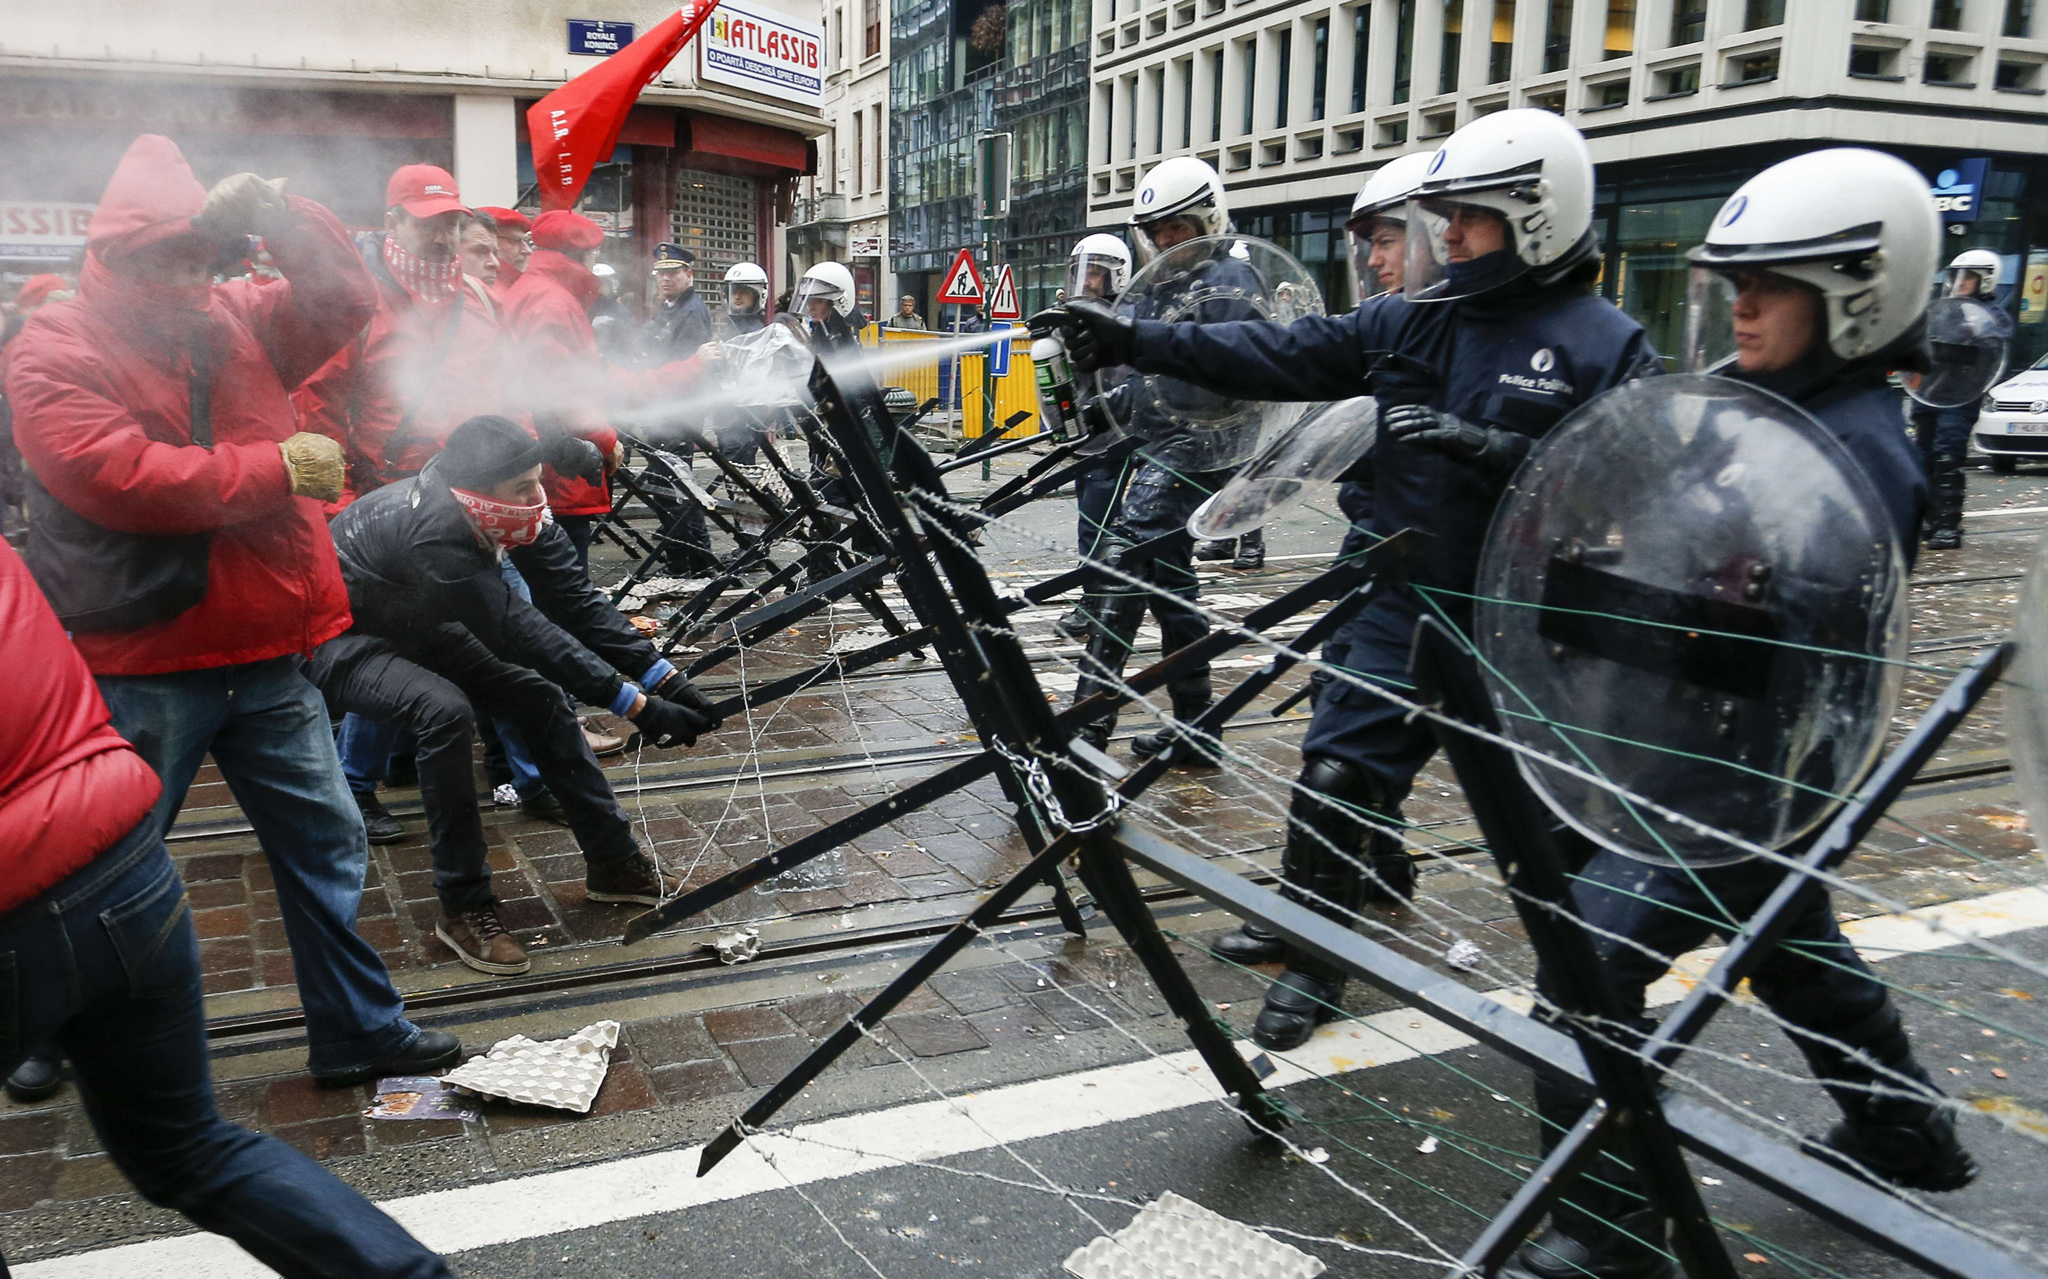 Union members clash with police in Brussels during a national general strike which was called for by the different unions to protest against austerity measures.